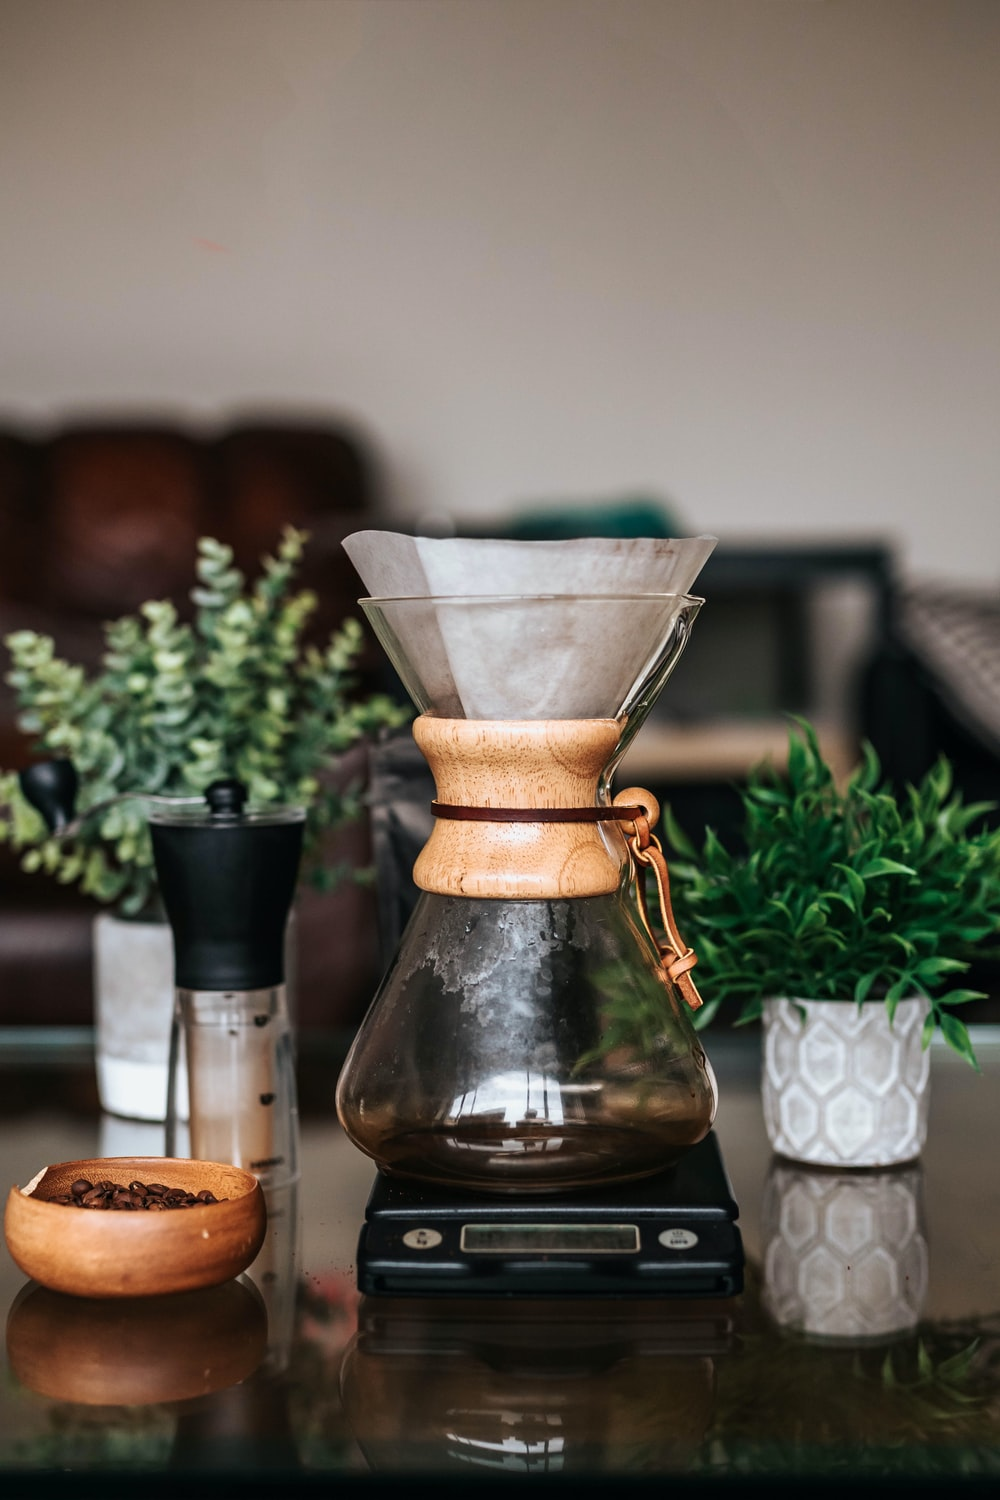 brown and clear glass coffee maker